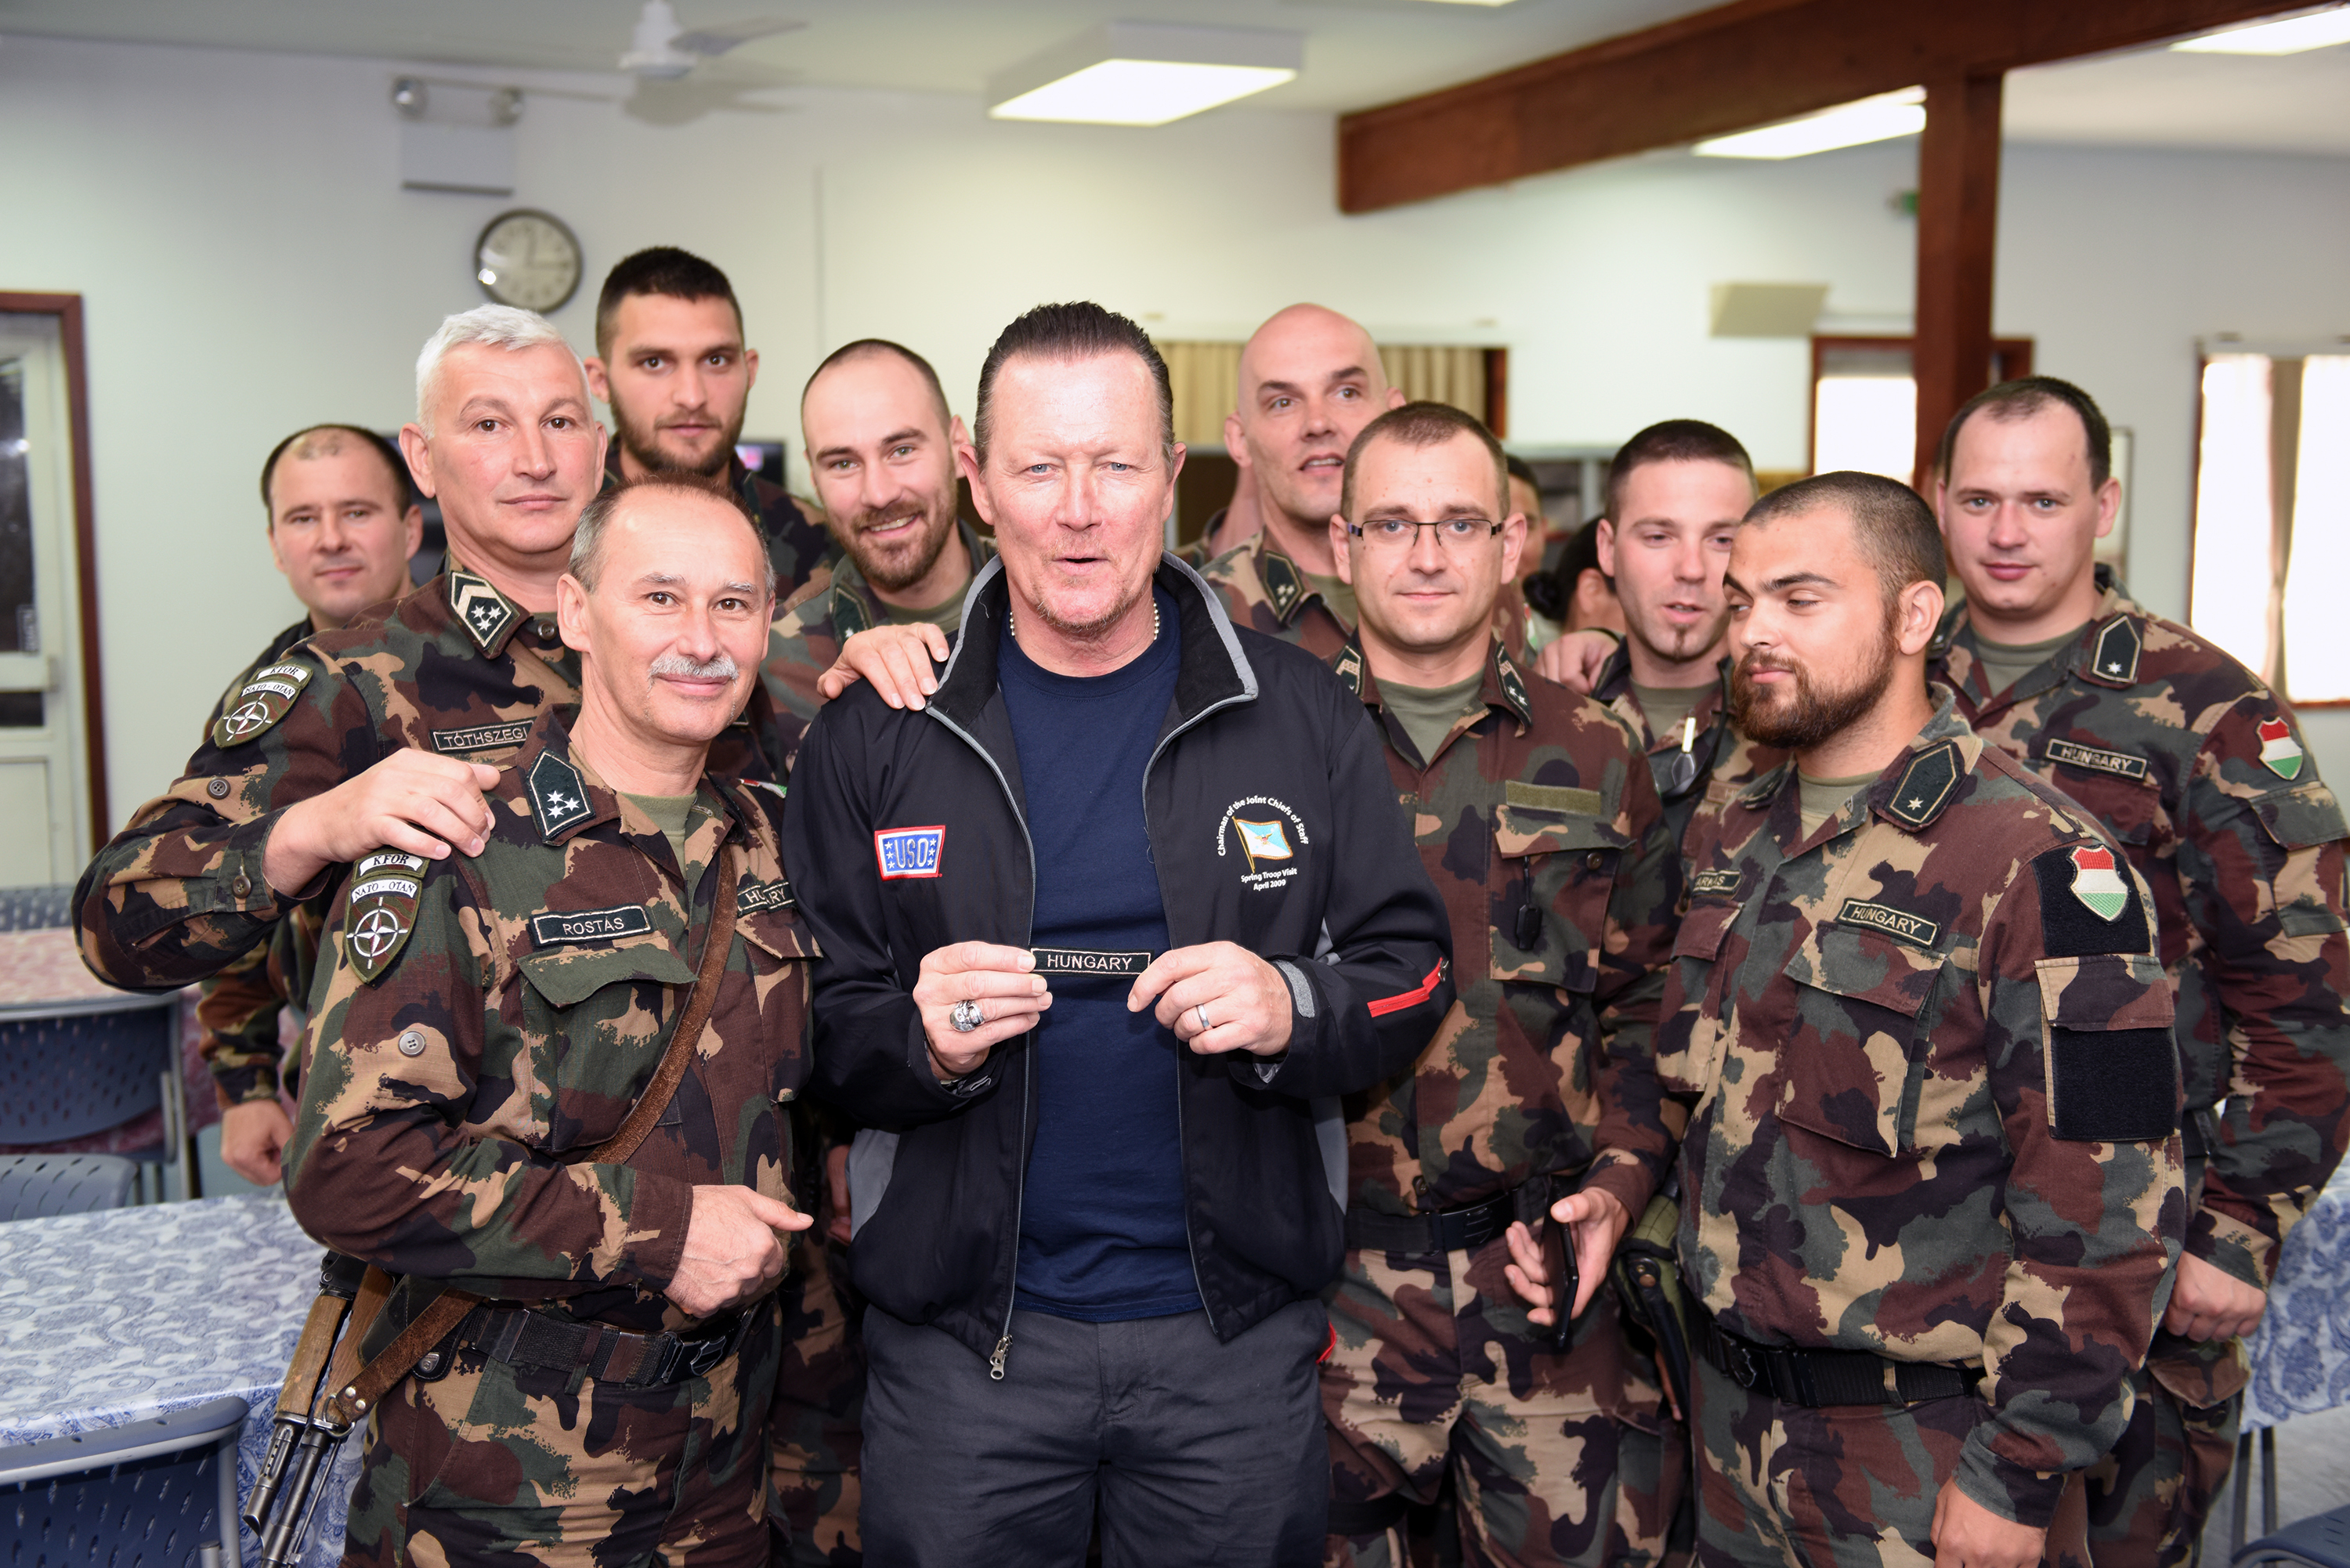 File:Robert Patrick with troops from international partner